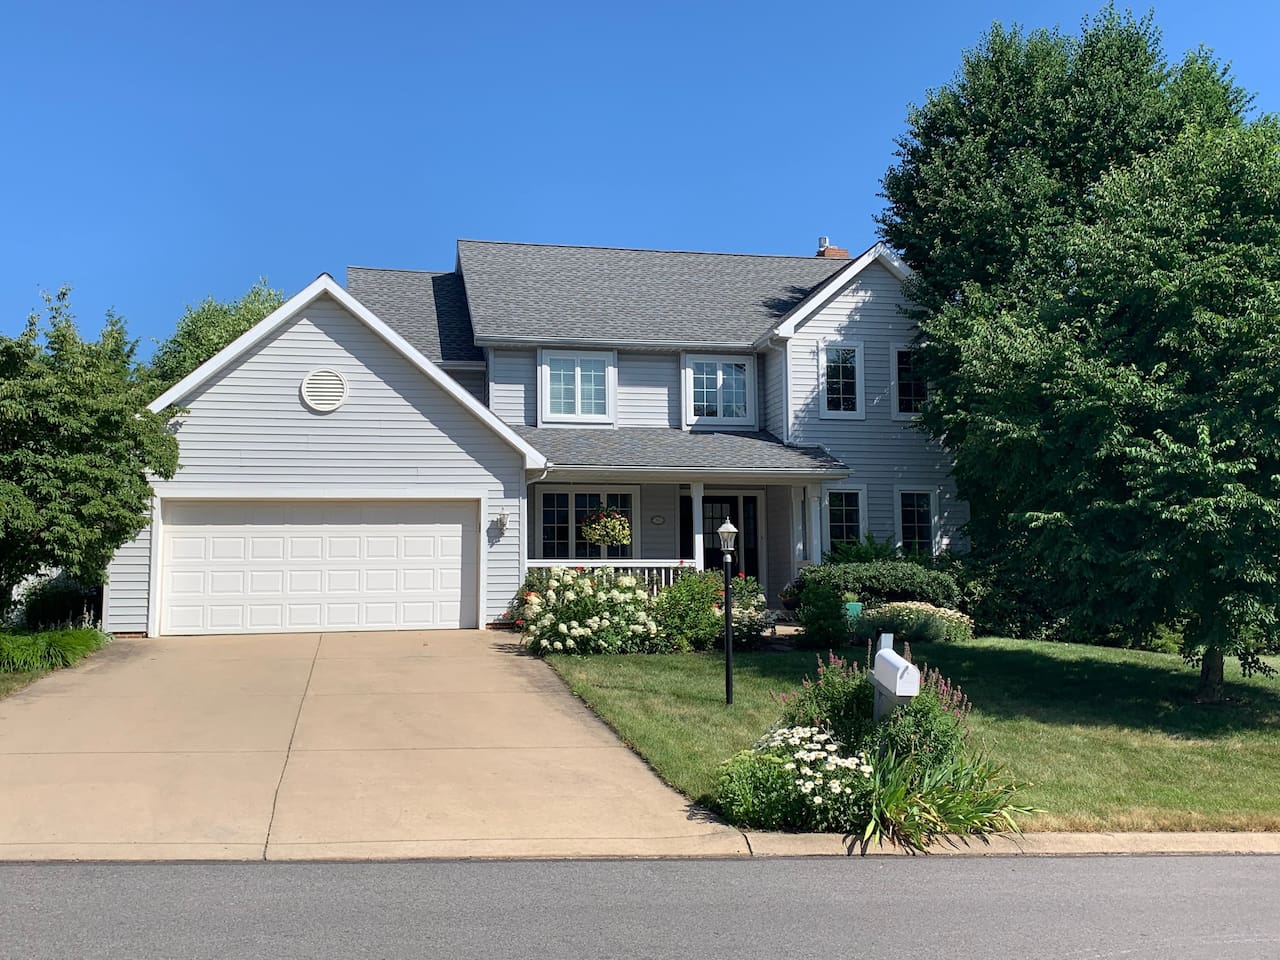 Family-friendly home, close to campus, with ample parking